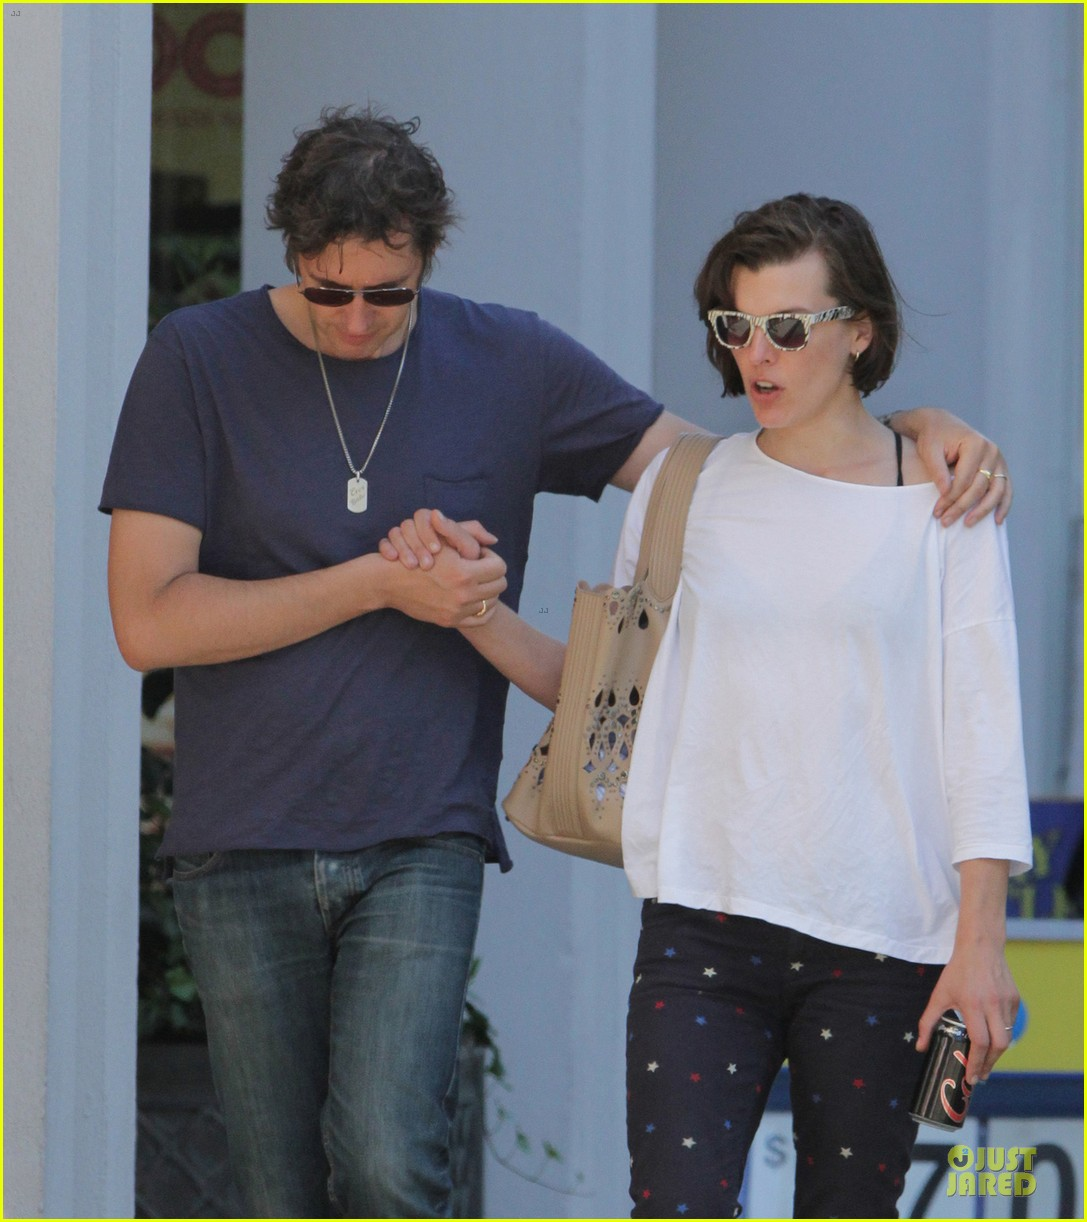 milla jovovich paul ws anderson hold hands in toronto 042909040